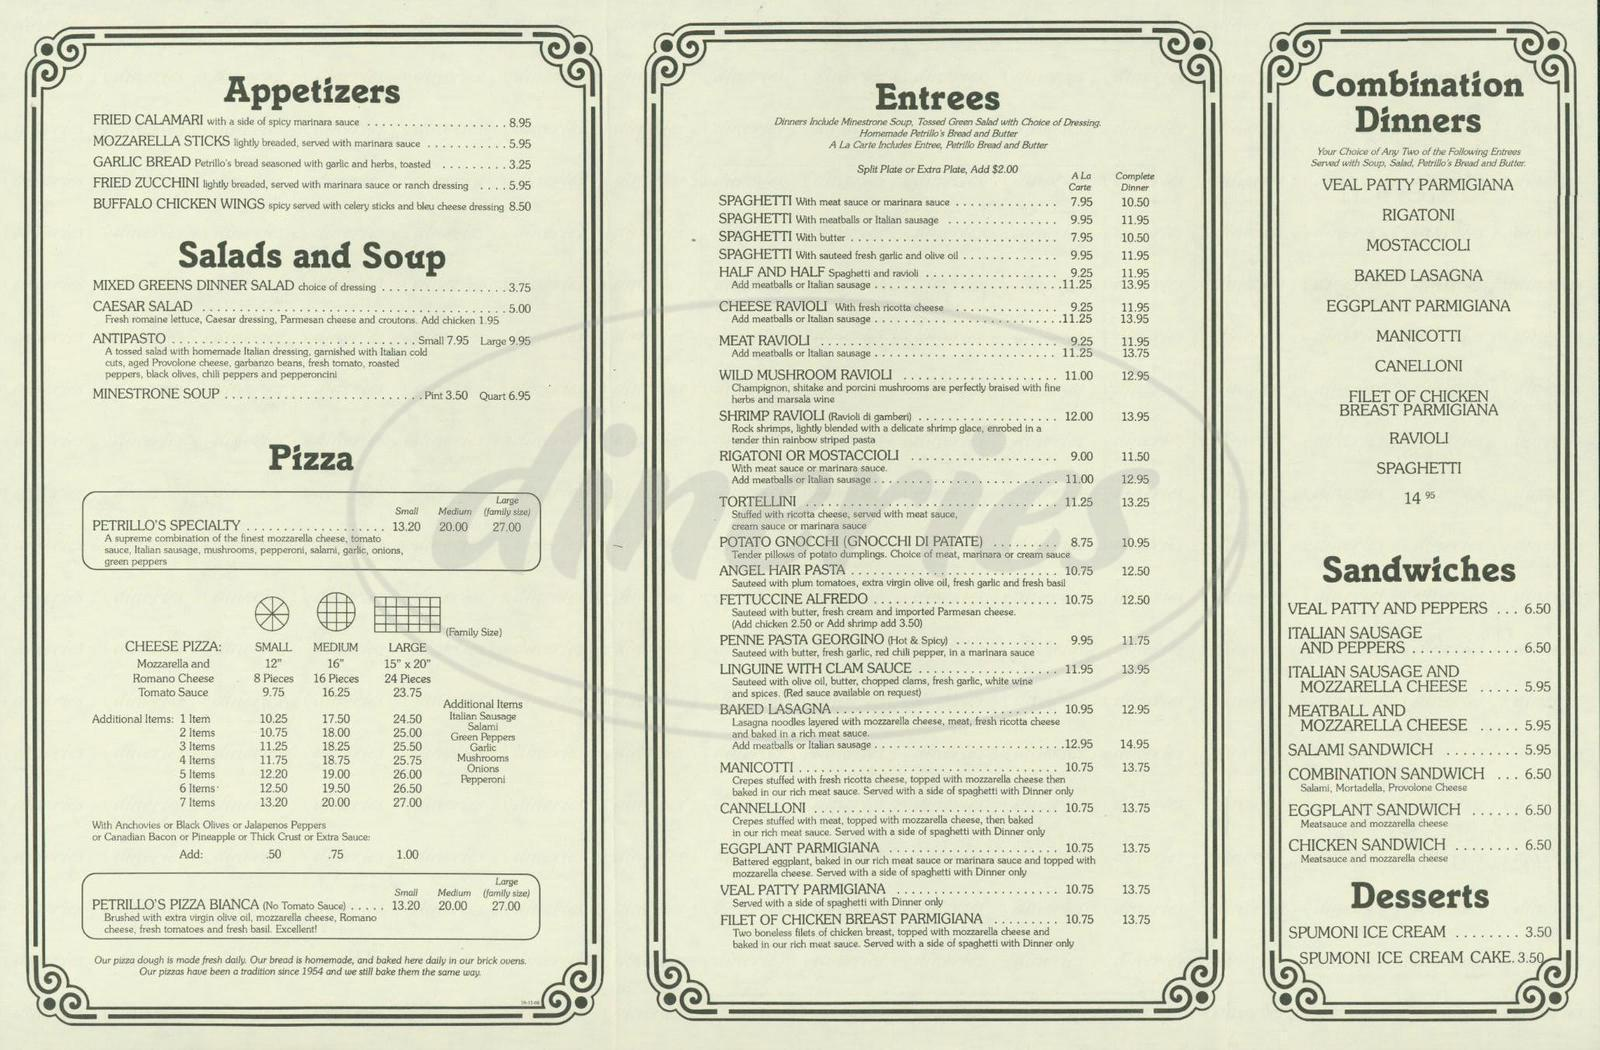 menu for The Original Petrillo's